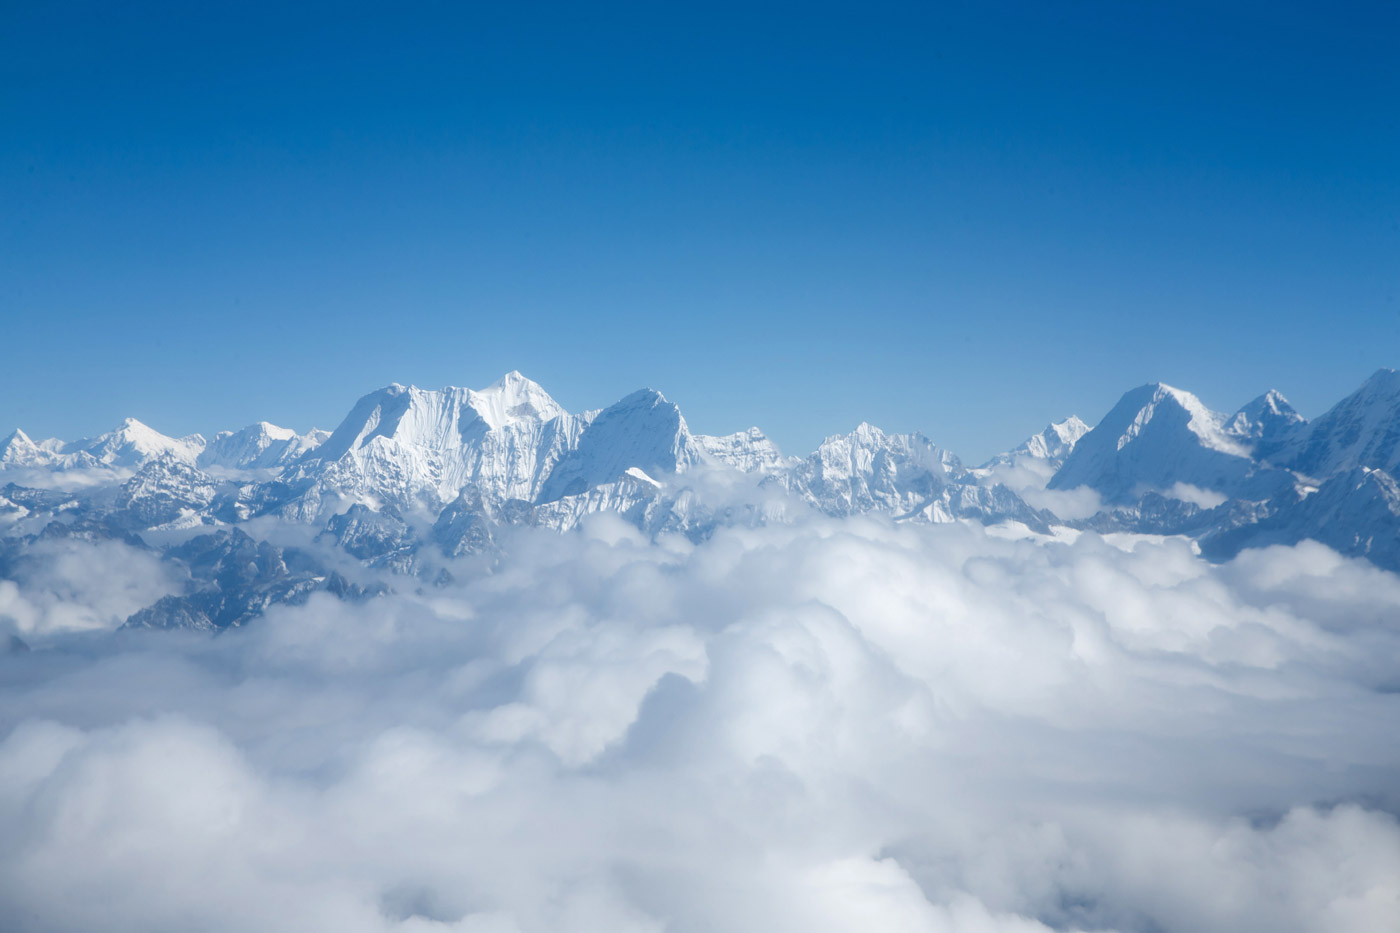 <p>The Himalayas from 20,000 feet.</p>